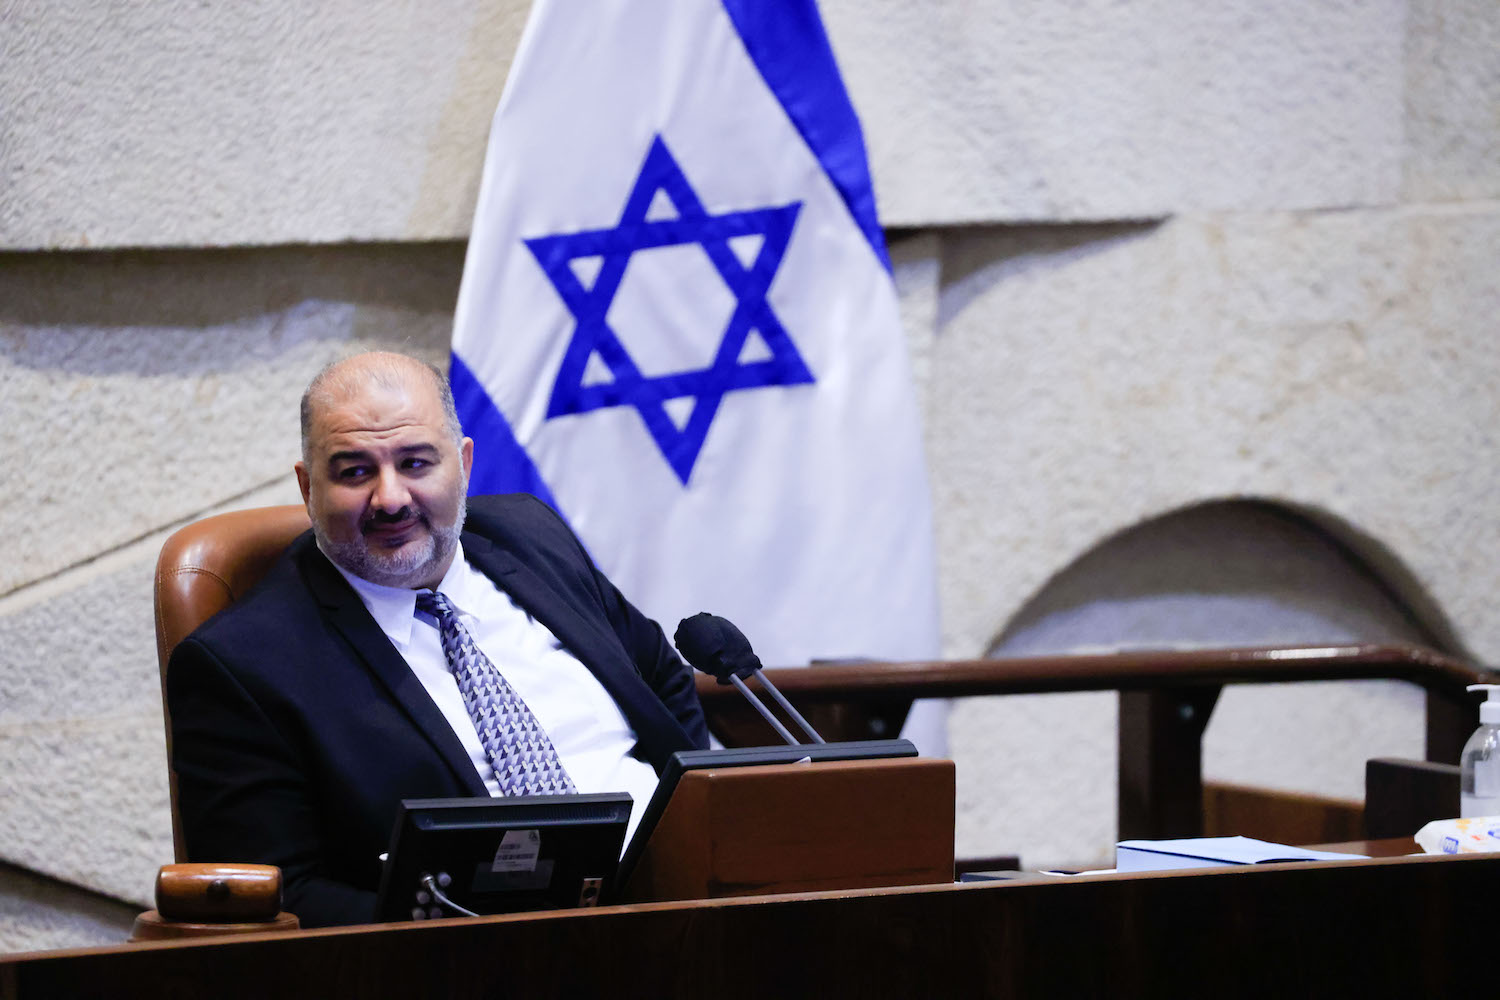 Ra'am MK Mansour Abbas seen during a vote on the state budget at the Knesset plenum, September 2, 2021. (Olivier Fitoussi/Flash90)